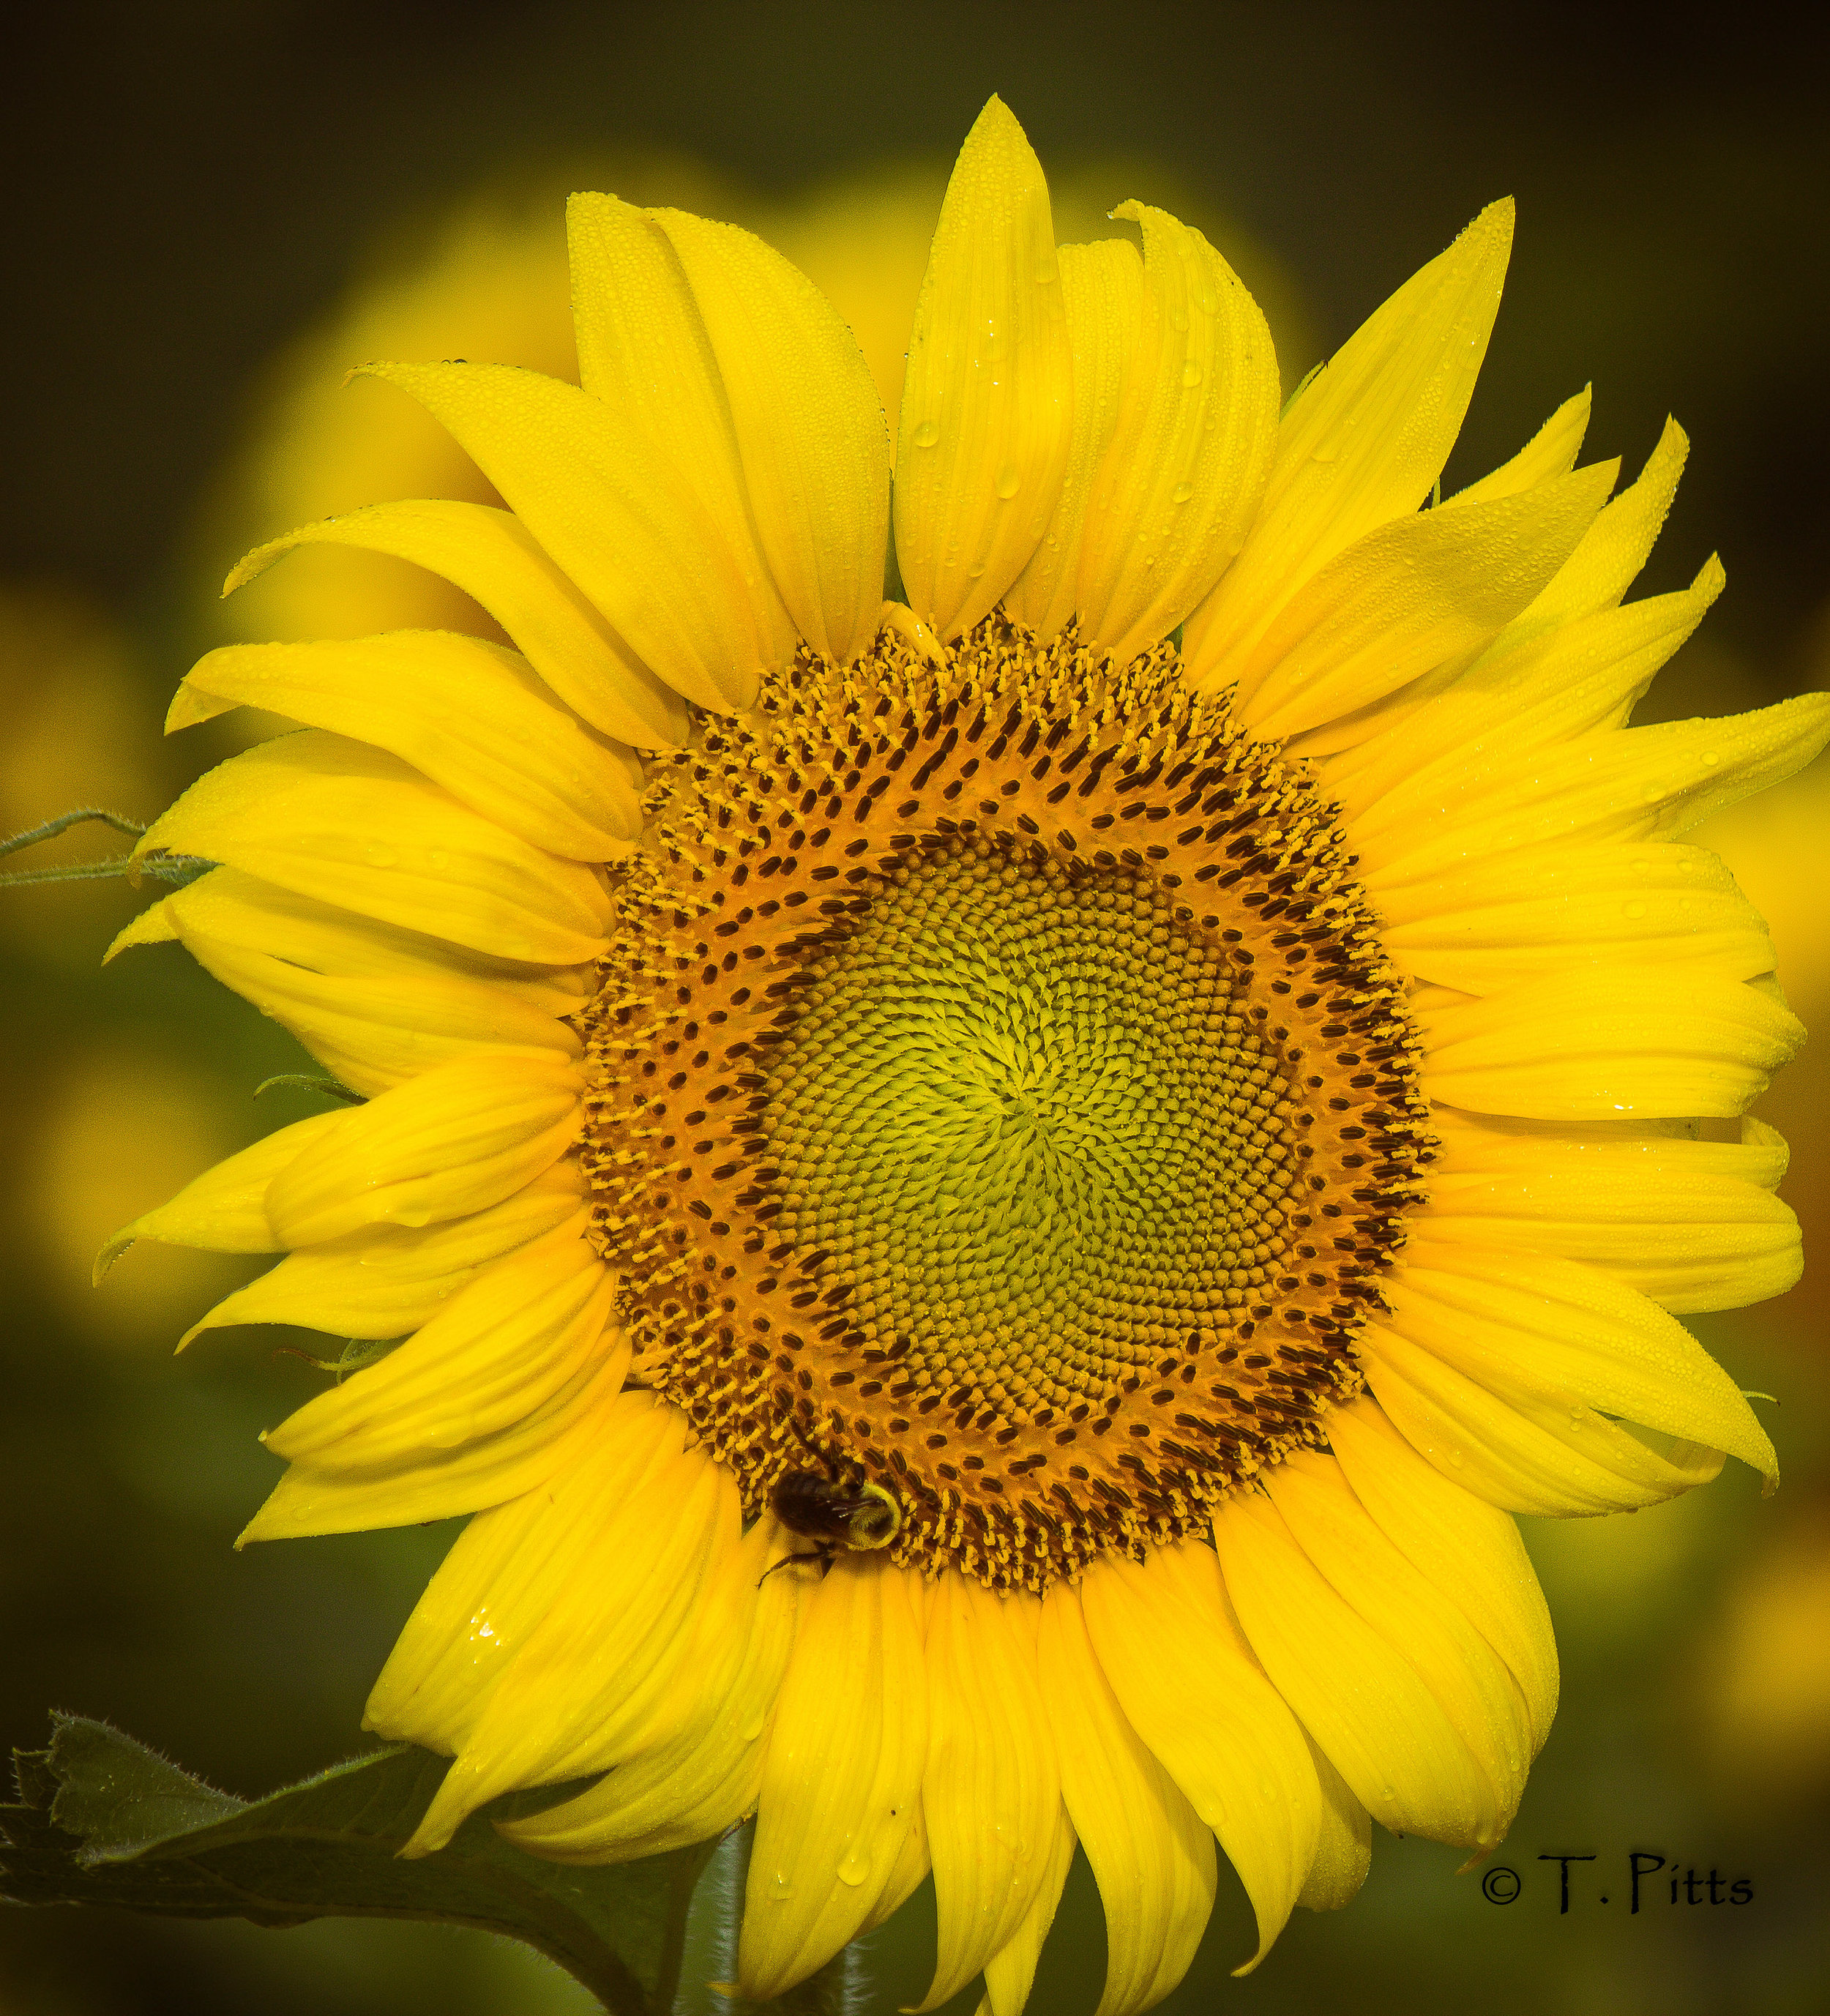 sunflower Pitts1.jpg